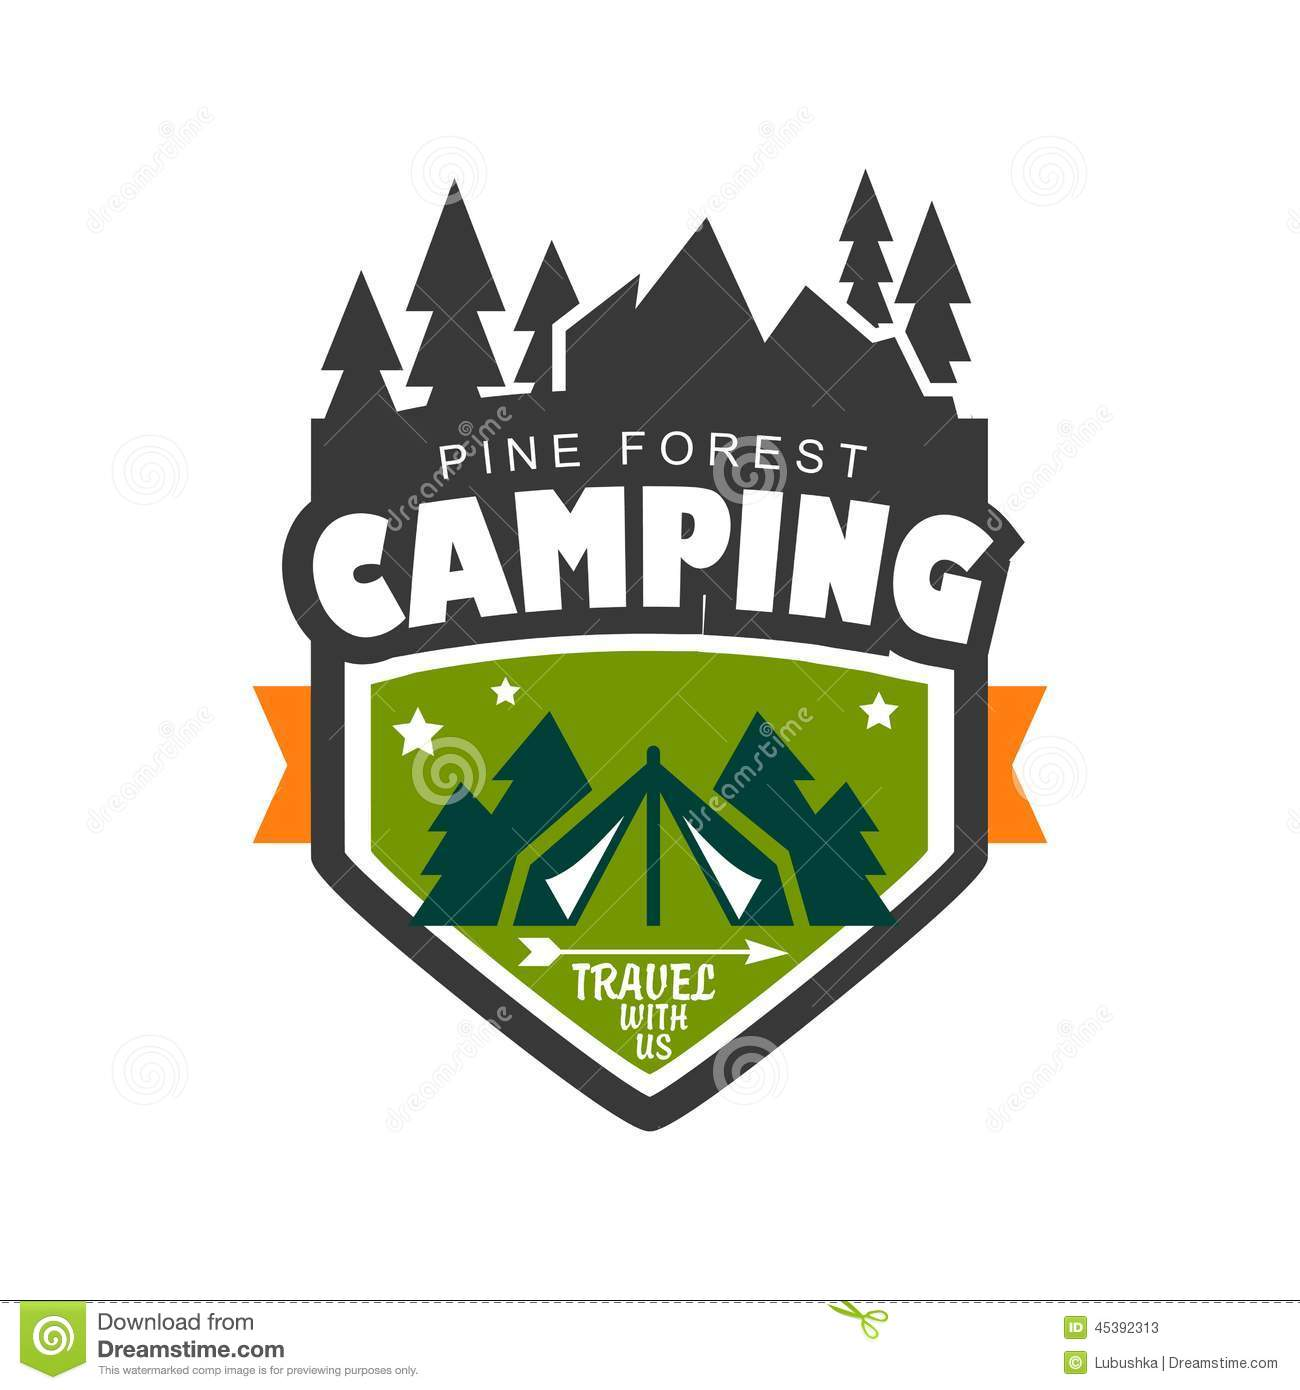 Camping stock vector. Illustration of emblem, logo, fire